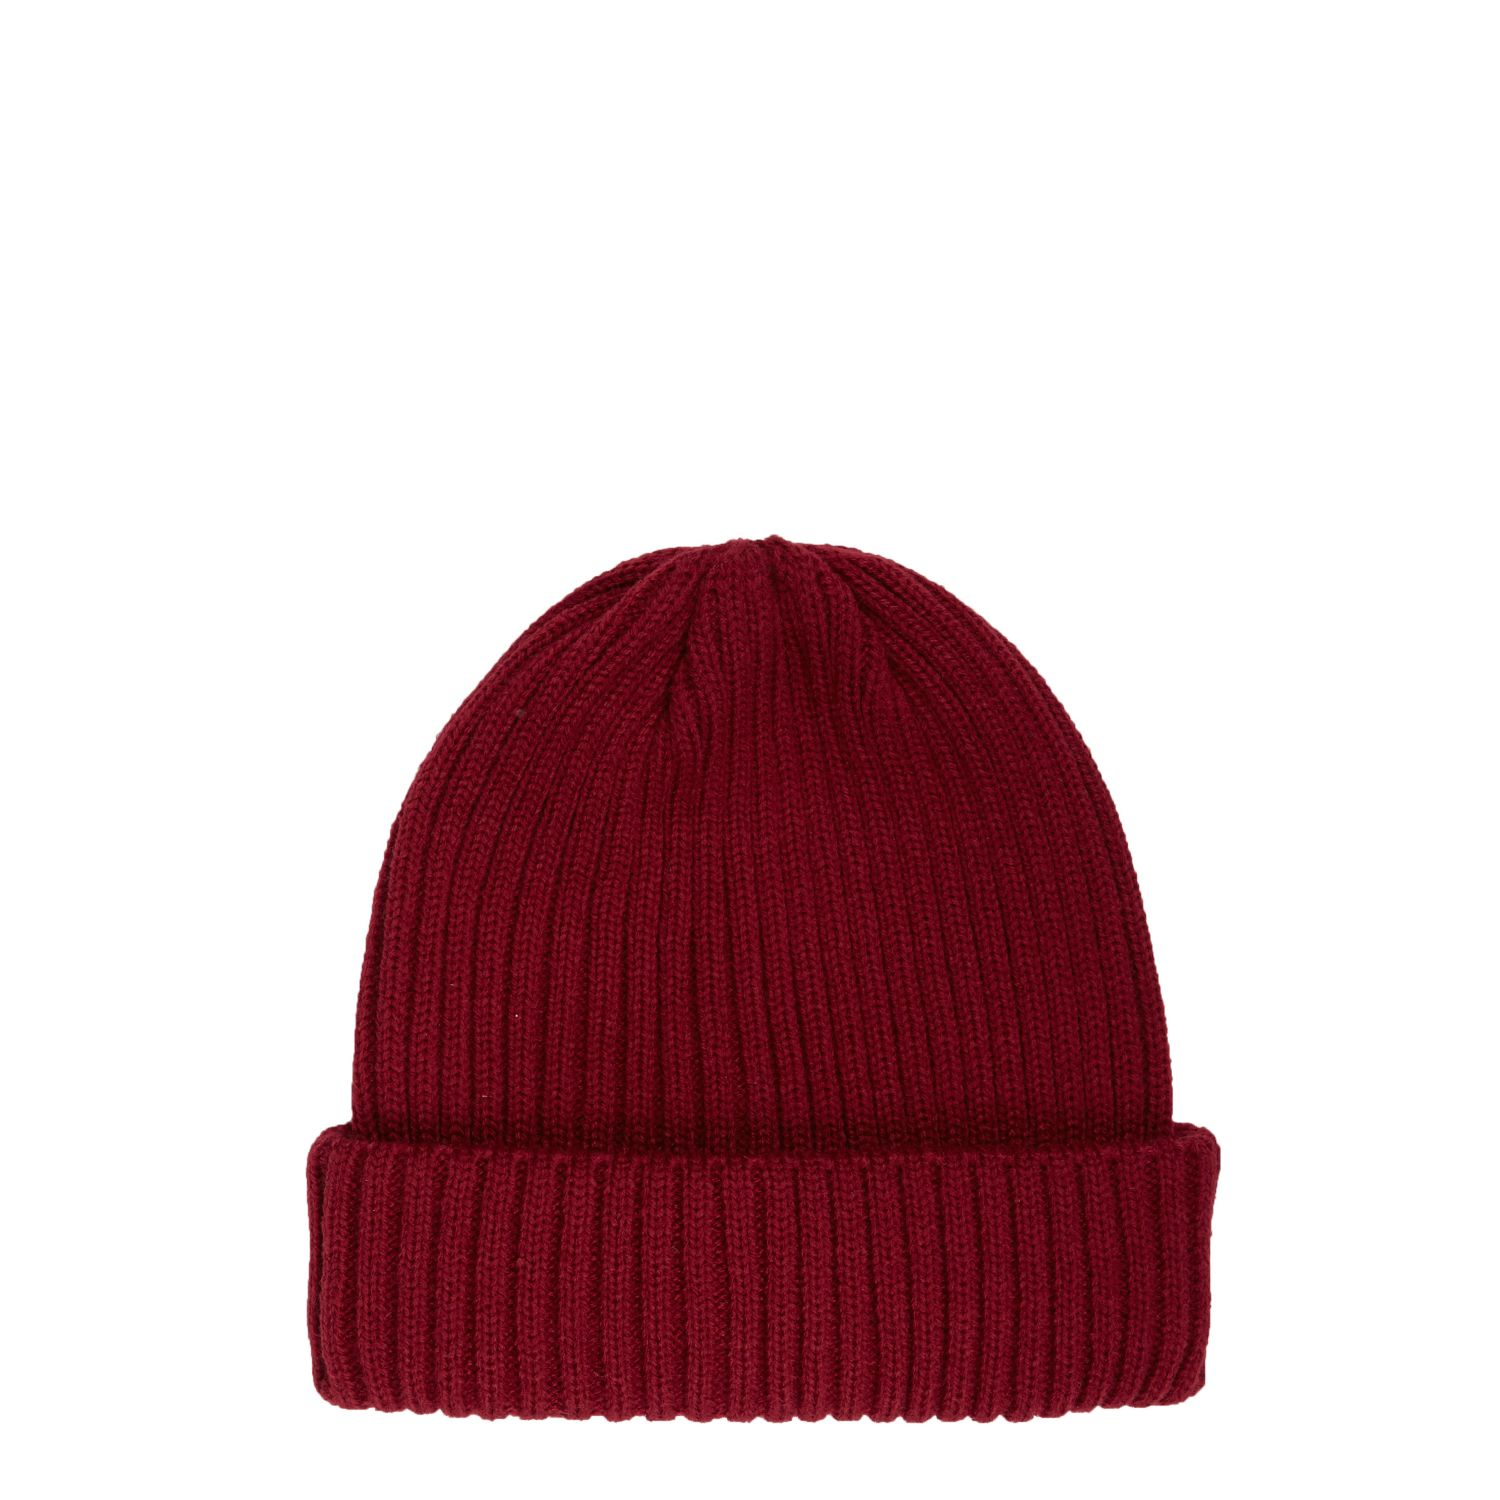 Shop eBay for great deals on Red Beanie Hats for Men. You'll find new or used products in Red Beanie Hats for Men on eBay. Free shipping on selected items.